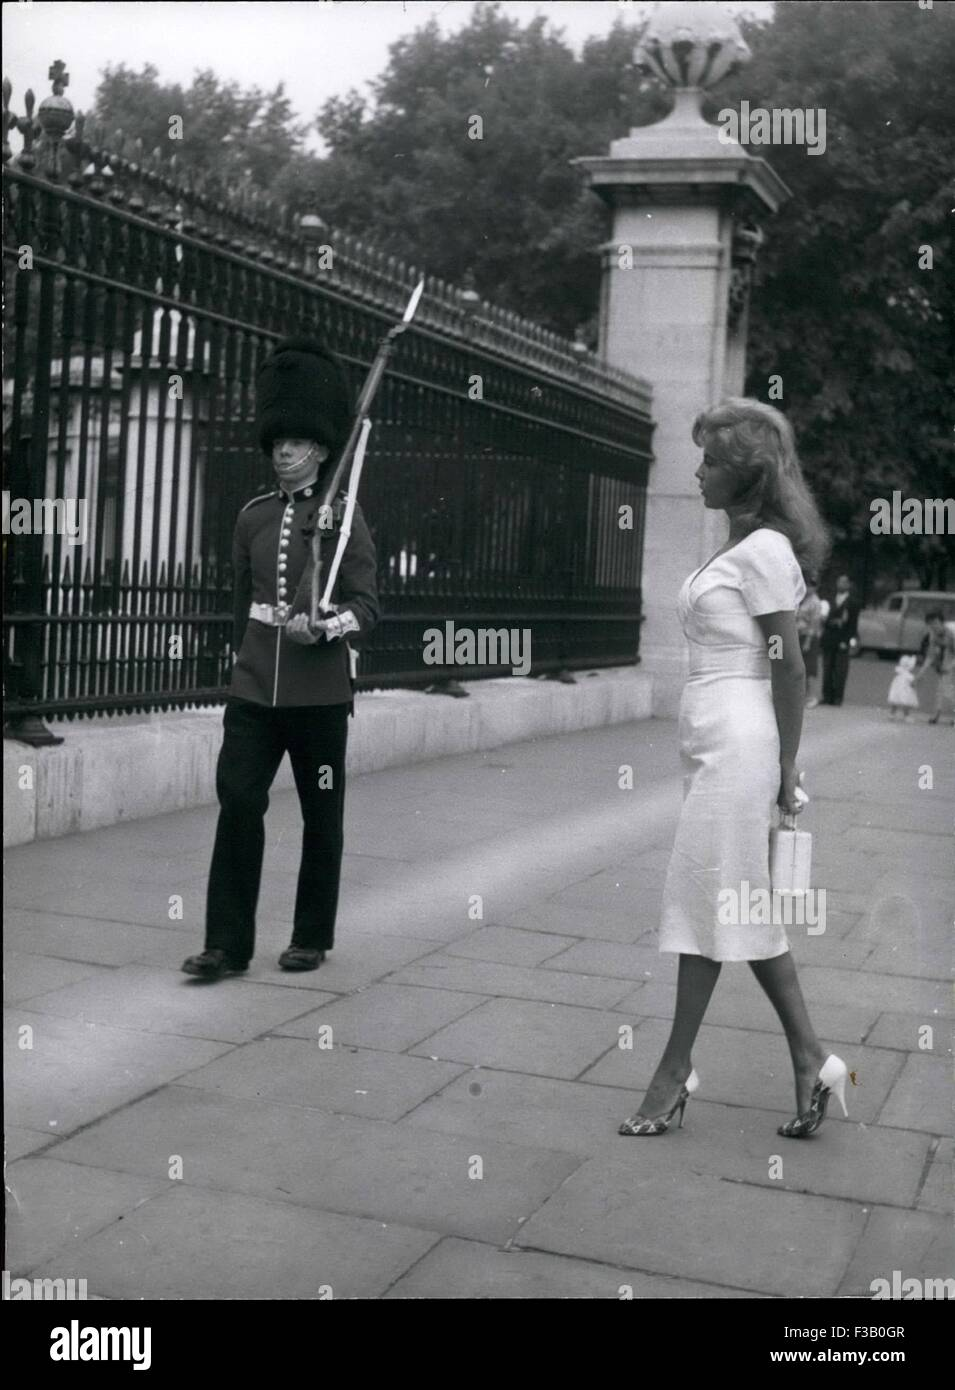 Dec. 19, 1981 - Hows this, guardsman, honey? Abbe Lane puts her left foot forward, but the guard concentrates on - Stock Image